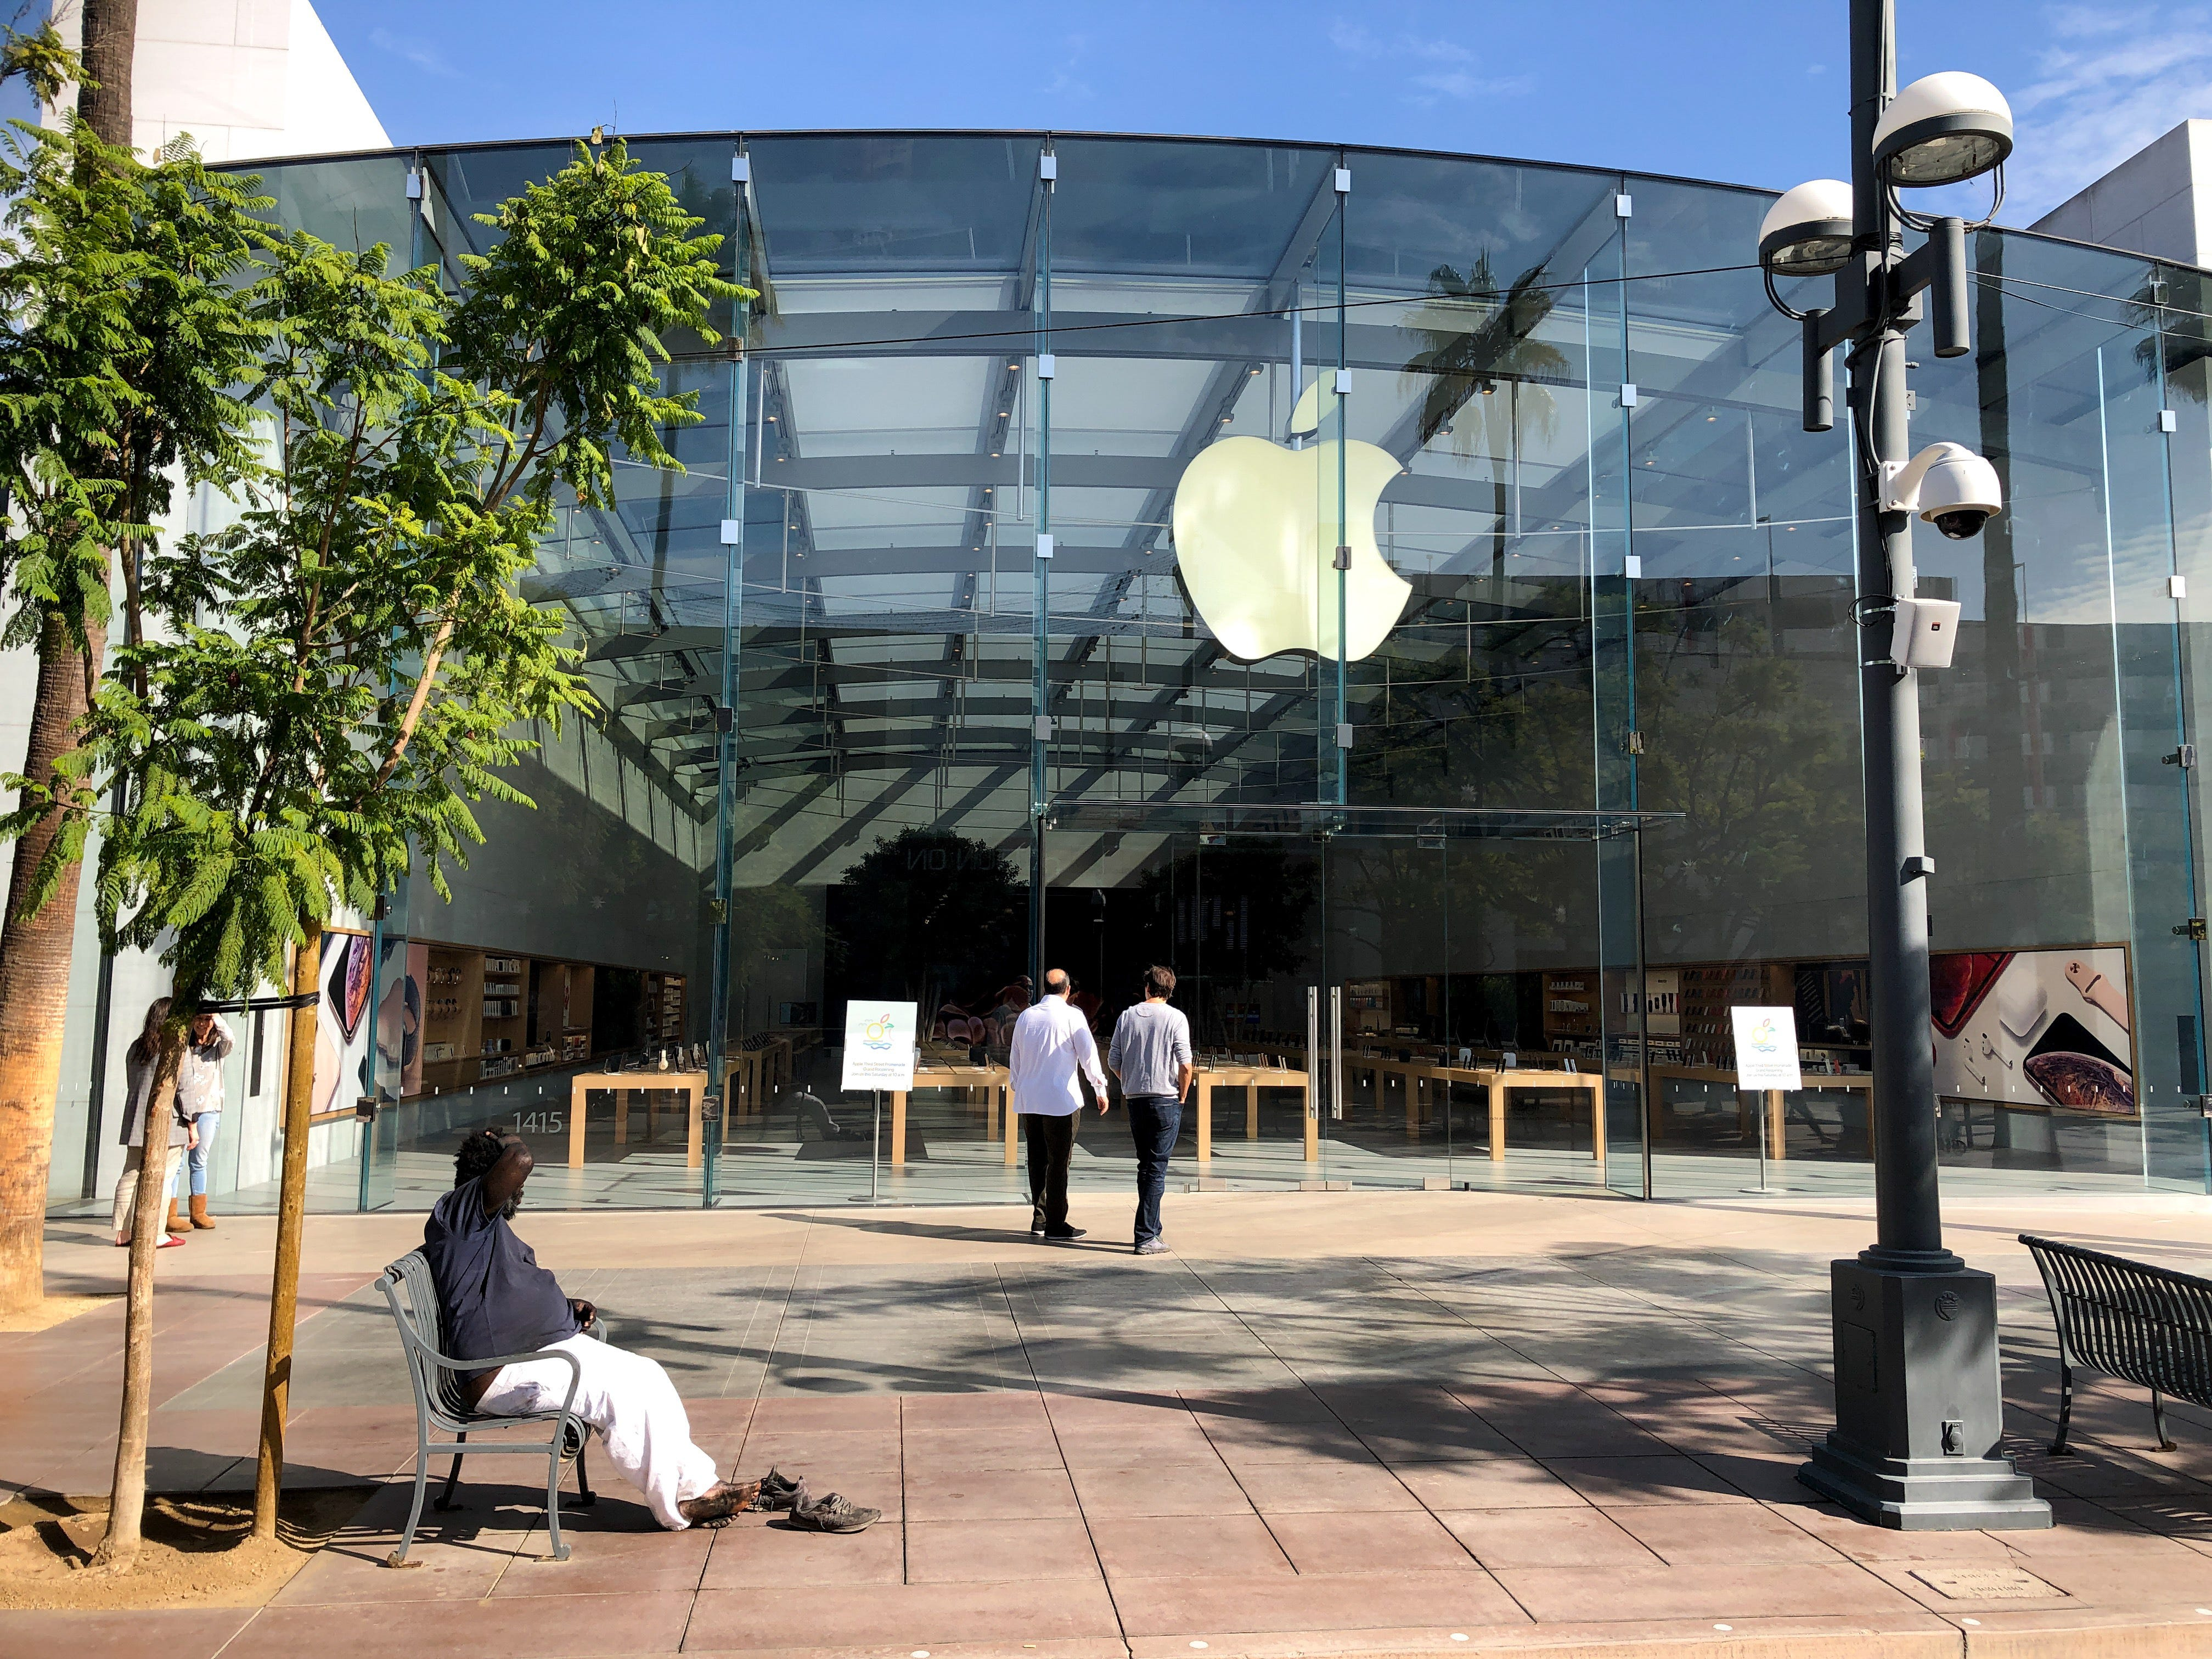 Apple is 1/3 of the way through major remake of flagship retail stores